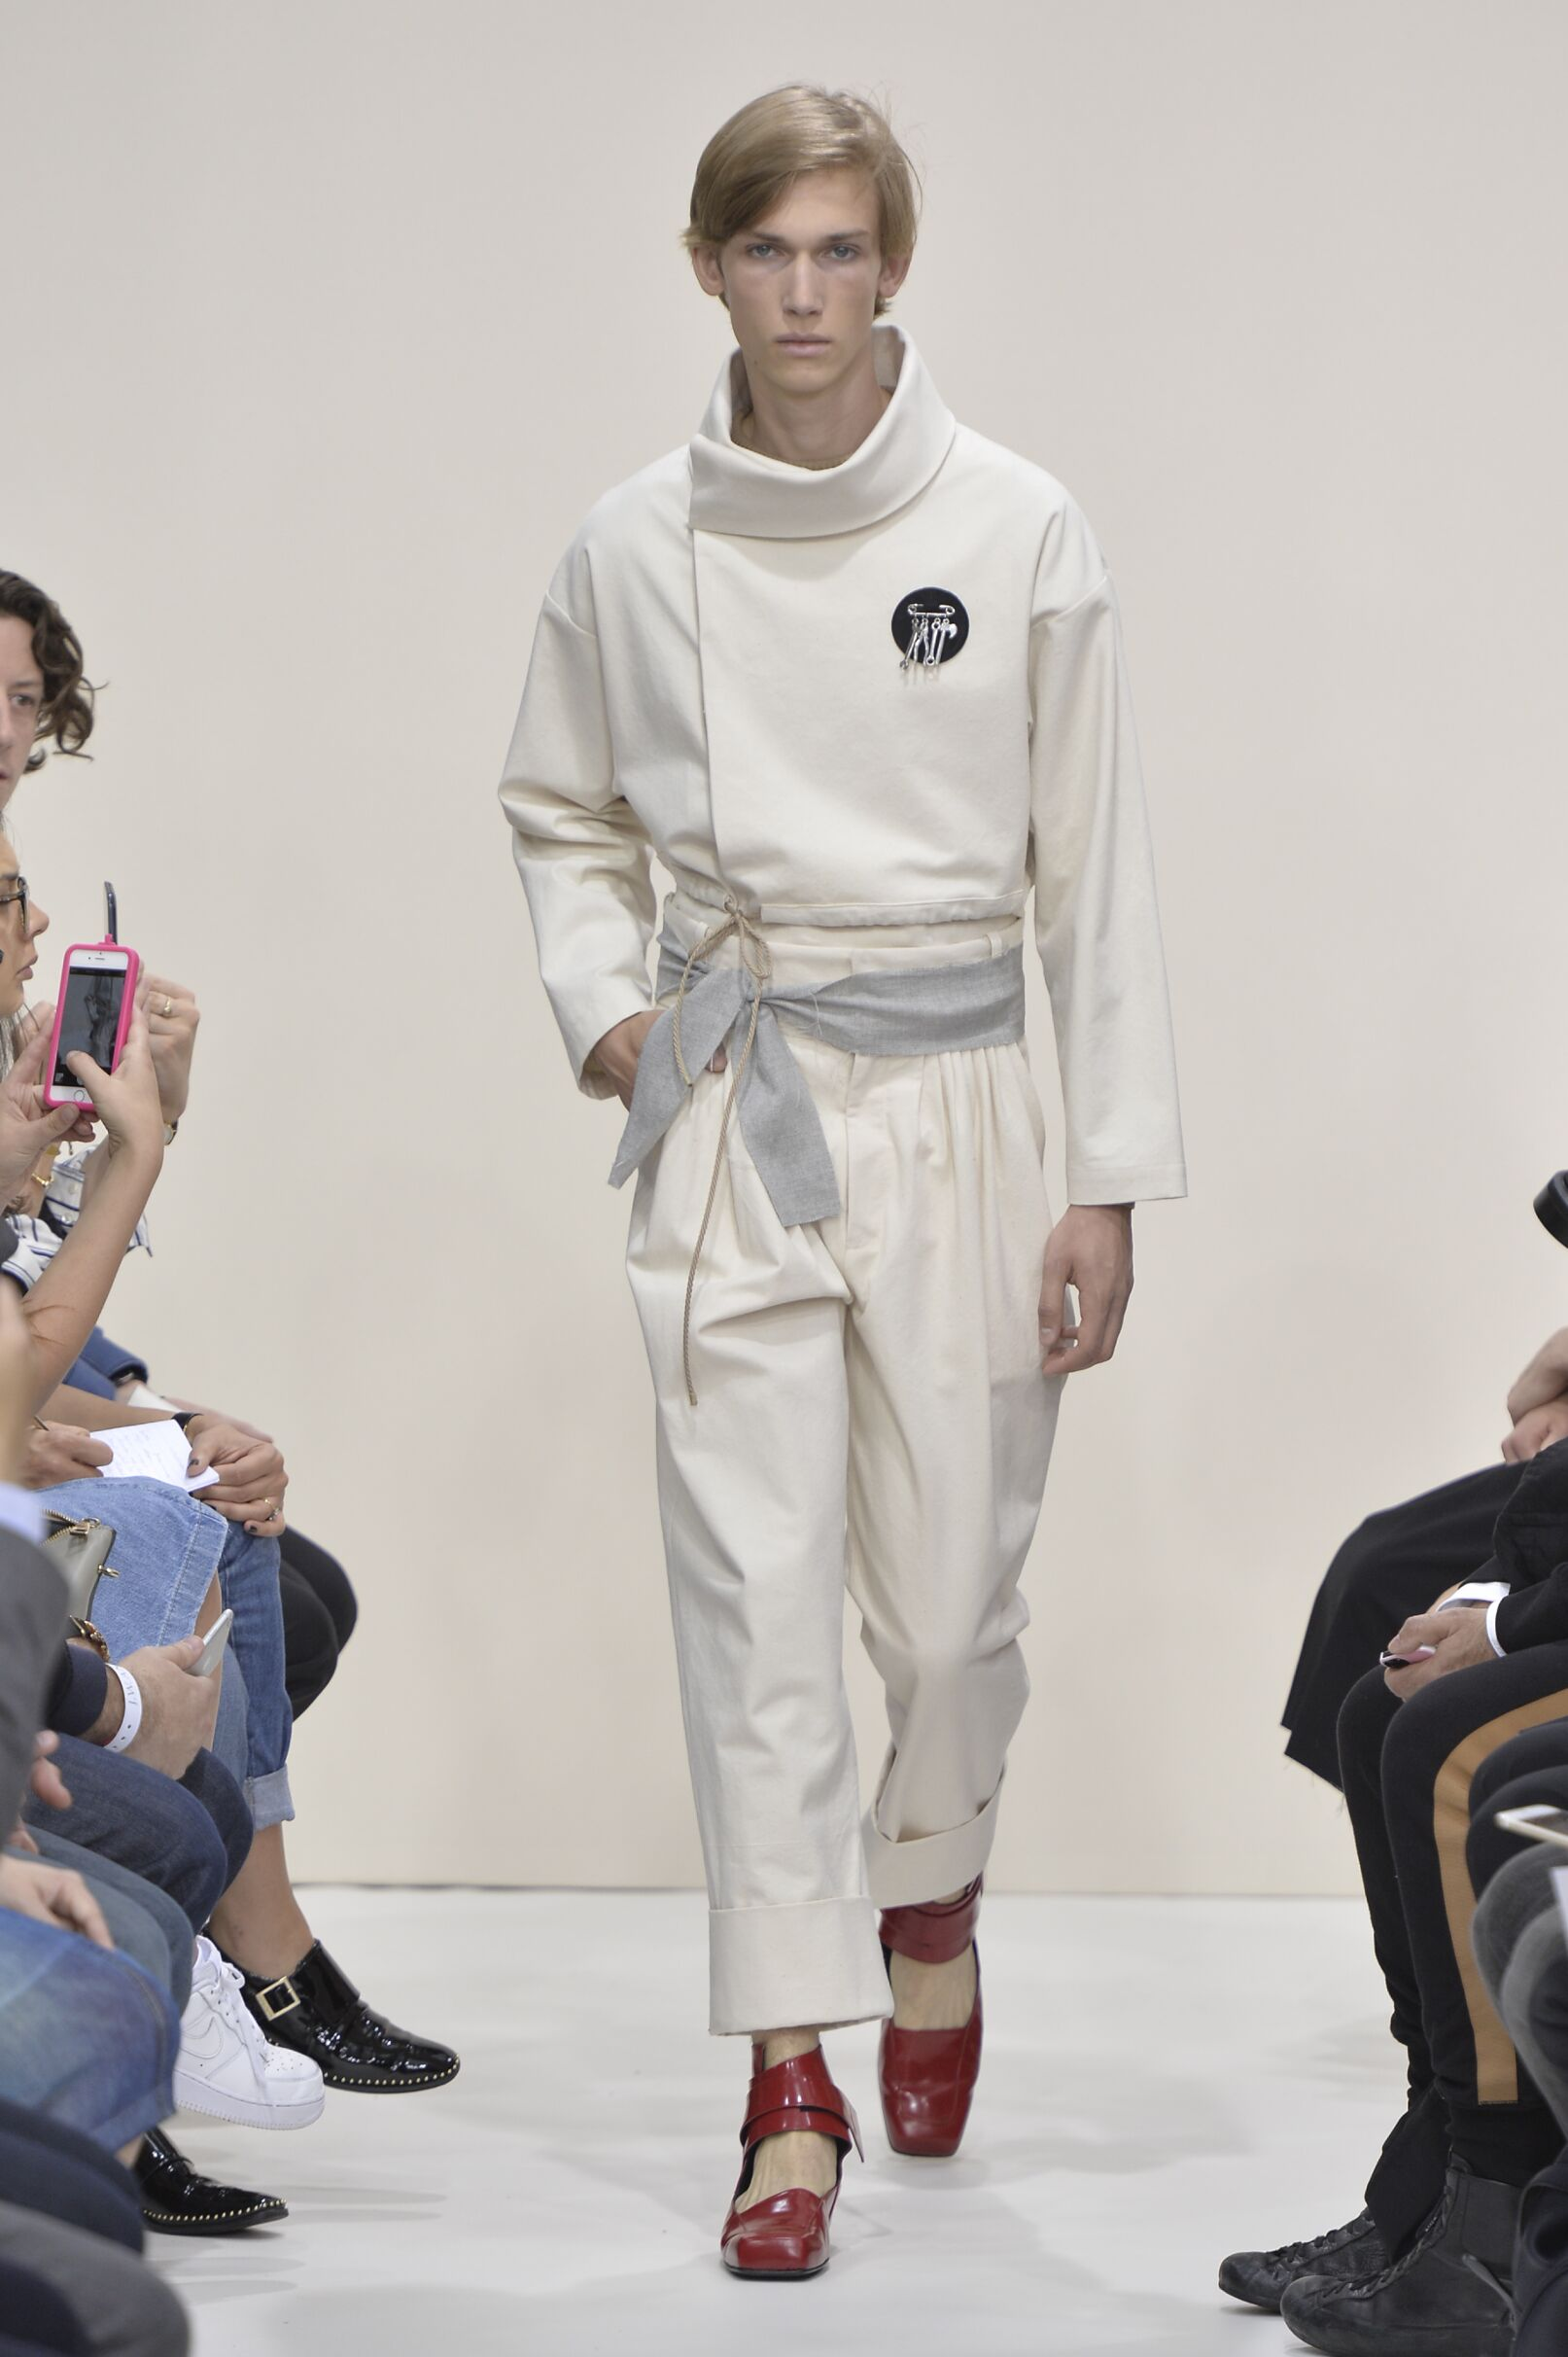 Runway J.W. Anderson Spring Summer 2016 Men's Collection London Fashion Week